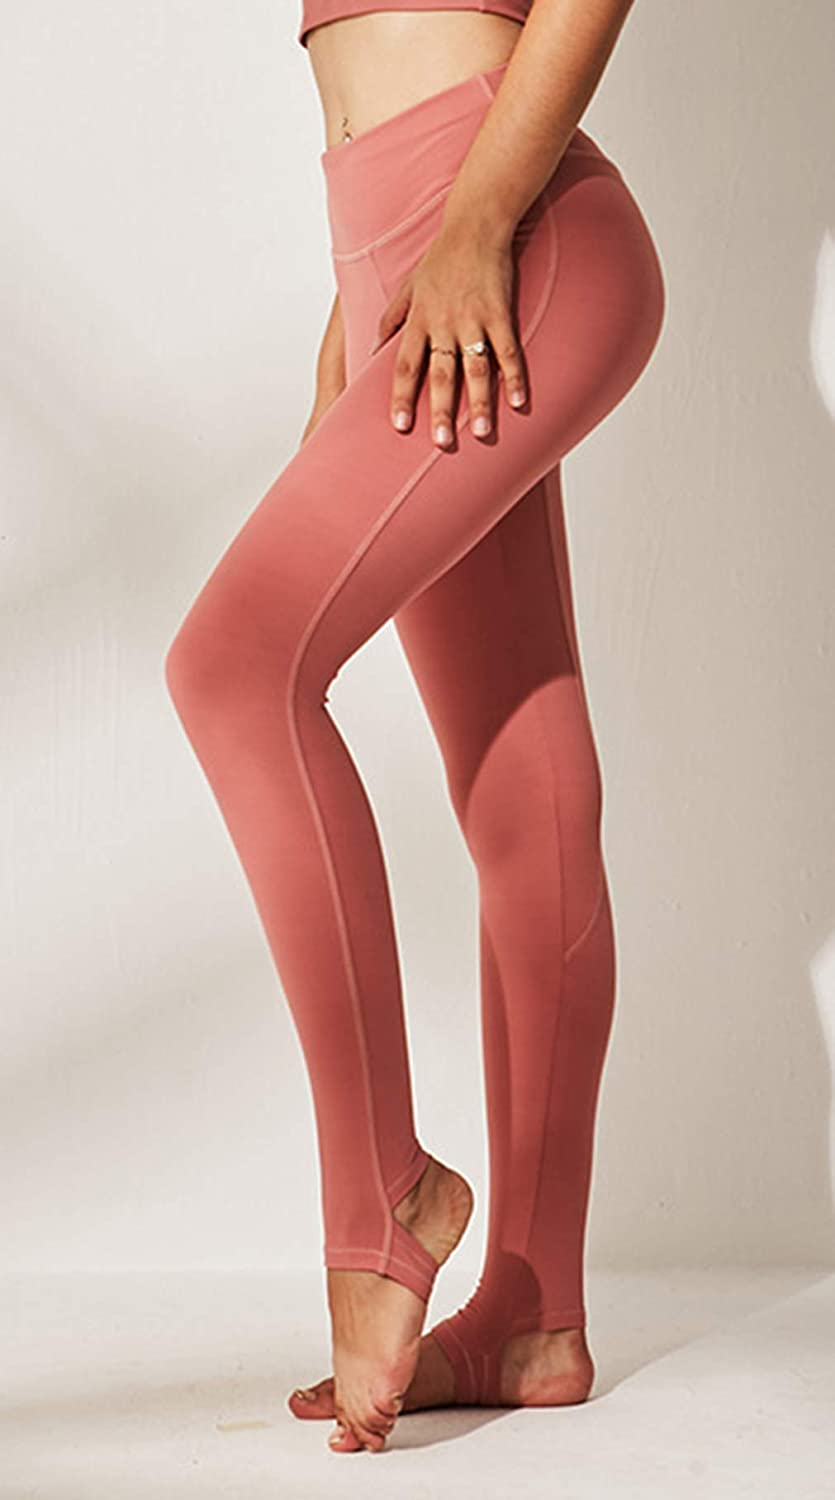 D C.Supernice Women's Yoga Pants High Waist Sports Leggings Gym Running Workout Clothes Women Stirrup Tights Ladies Joggers Brick Red